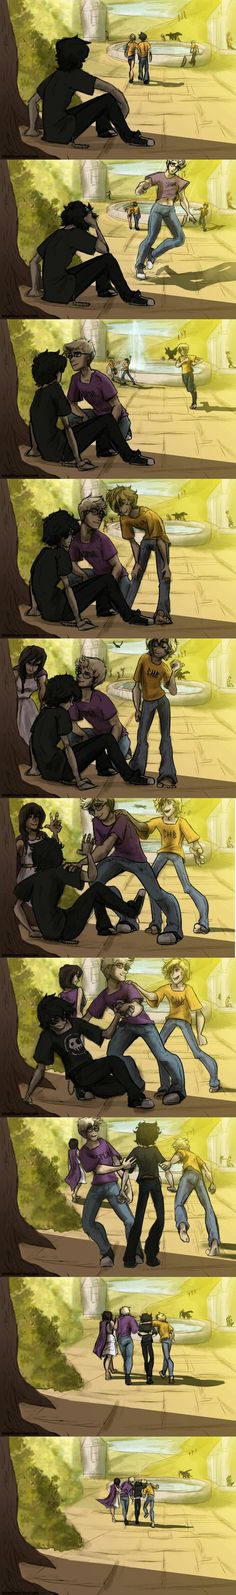 His is sweet and all but did you see Percy and Annabeth in the frames other than the first two?